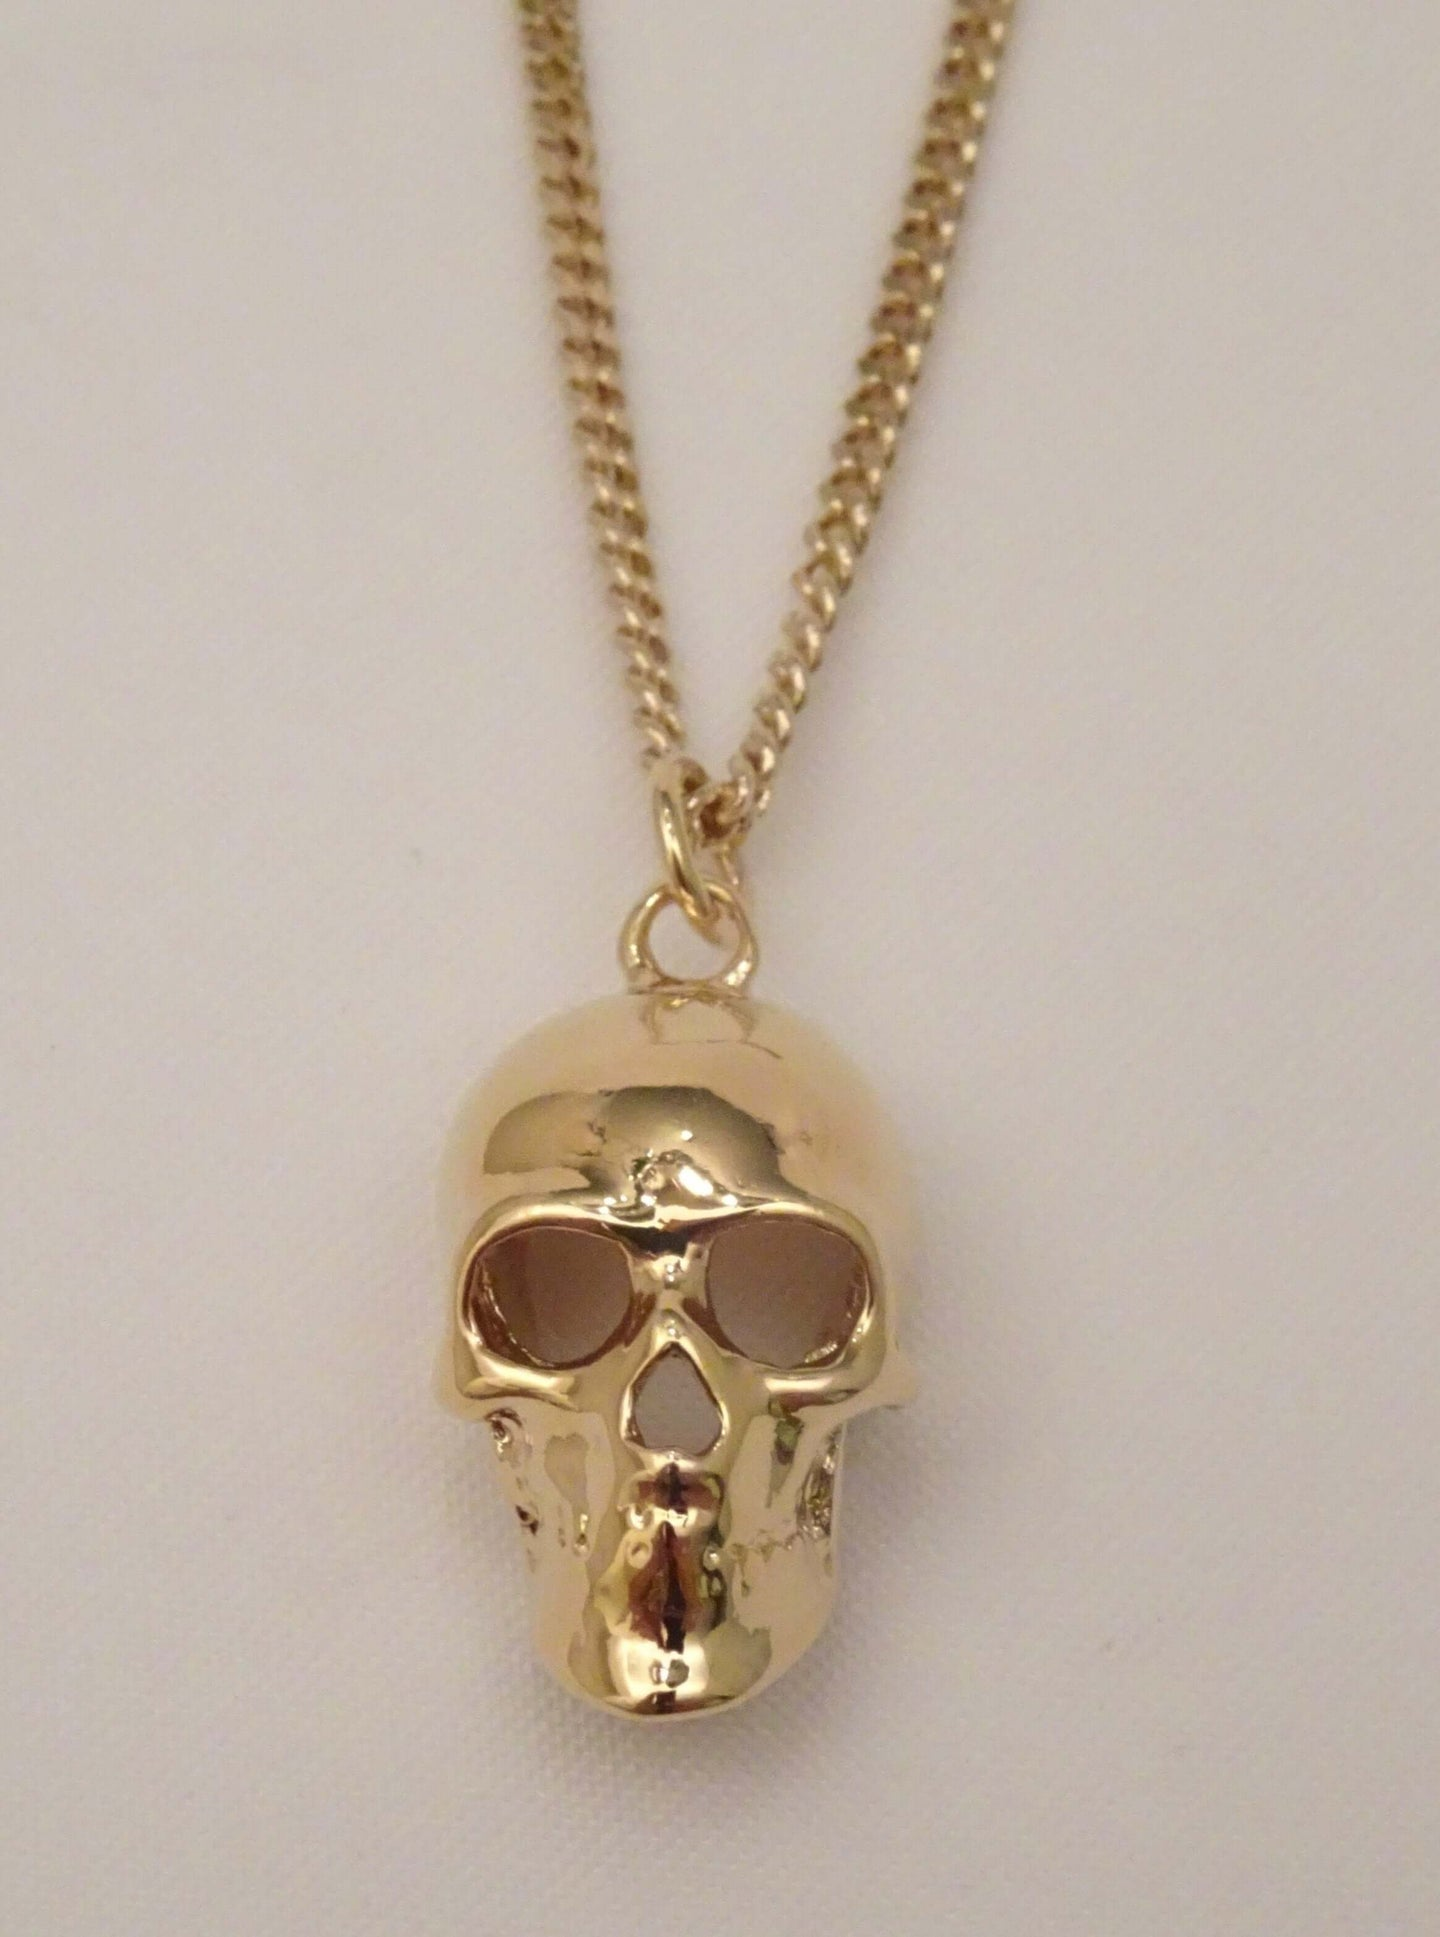 skull necklace, mens skull necklace, gold skull necklace, skull necklace womens, mens necklaces, guy necklaces, cook necklaces for men, mens chain pendant, cool necklaces for guys, biker jewelry, american jewelry